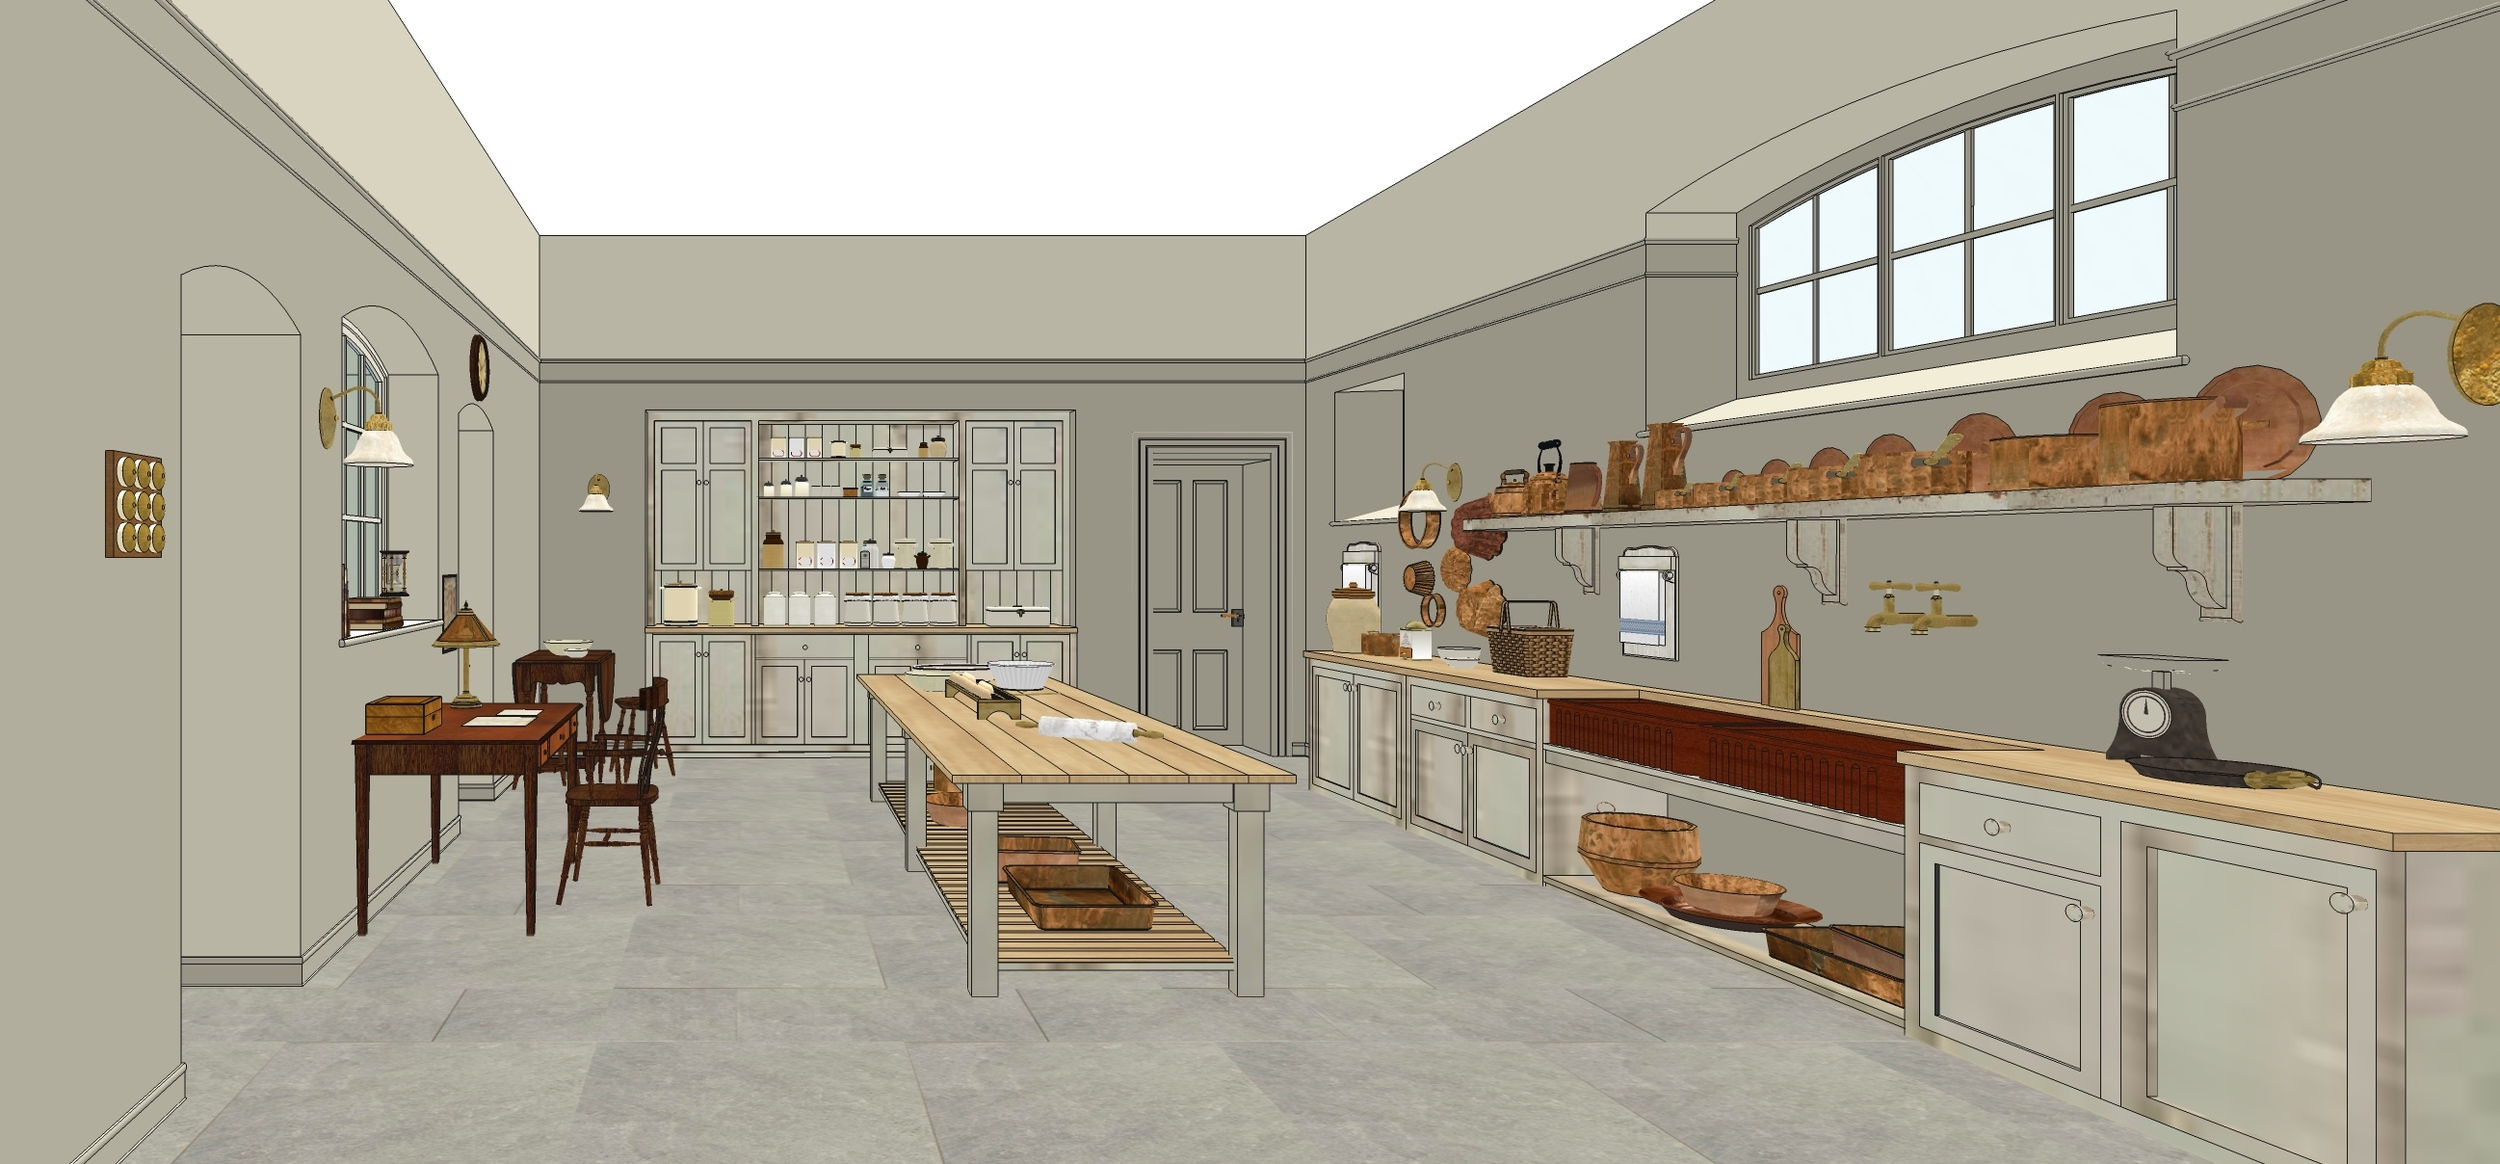 Downton Abbey Kitchen And Servant S Hall Sets Ginger Tougas